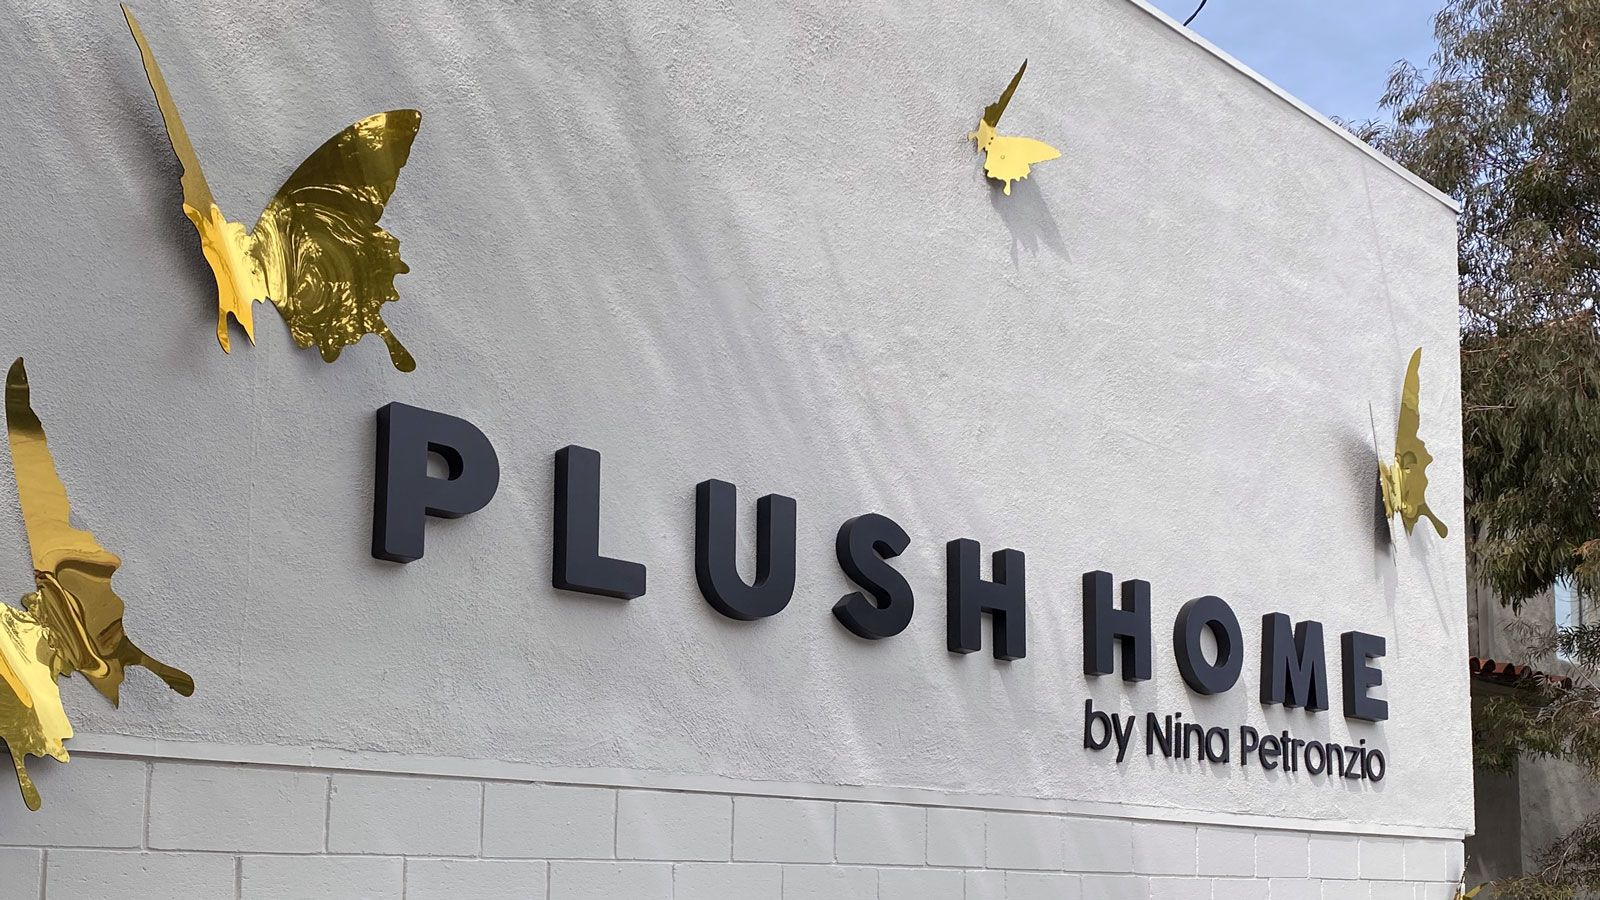 Plush Home custom 3d sign with golden decorative butterflies made of aluminum for storefront branding